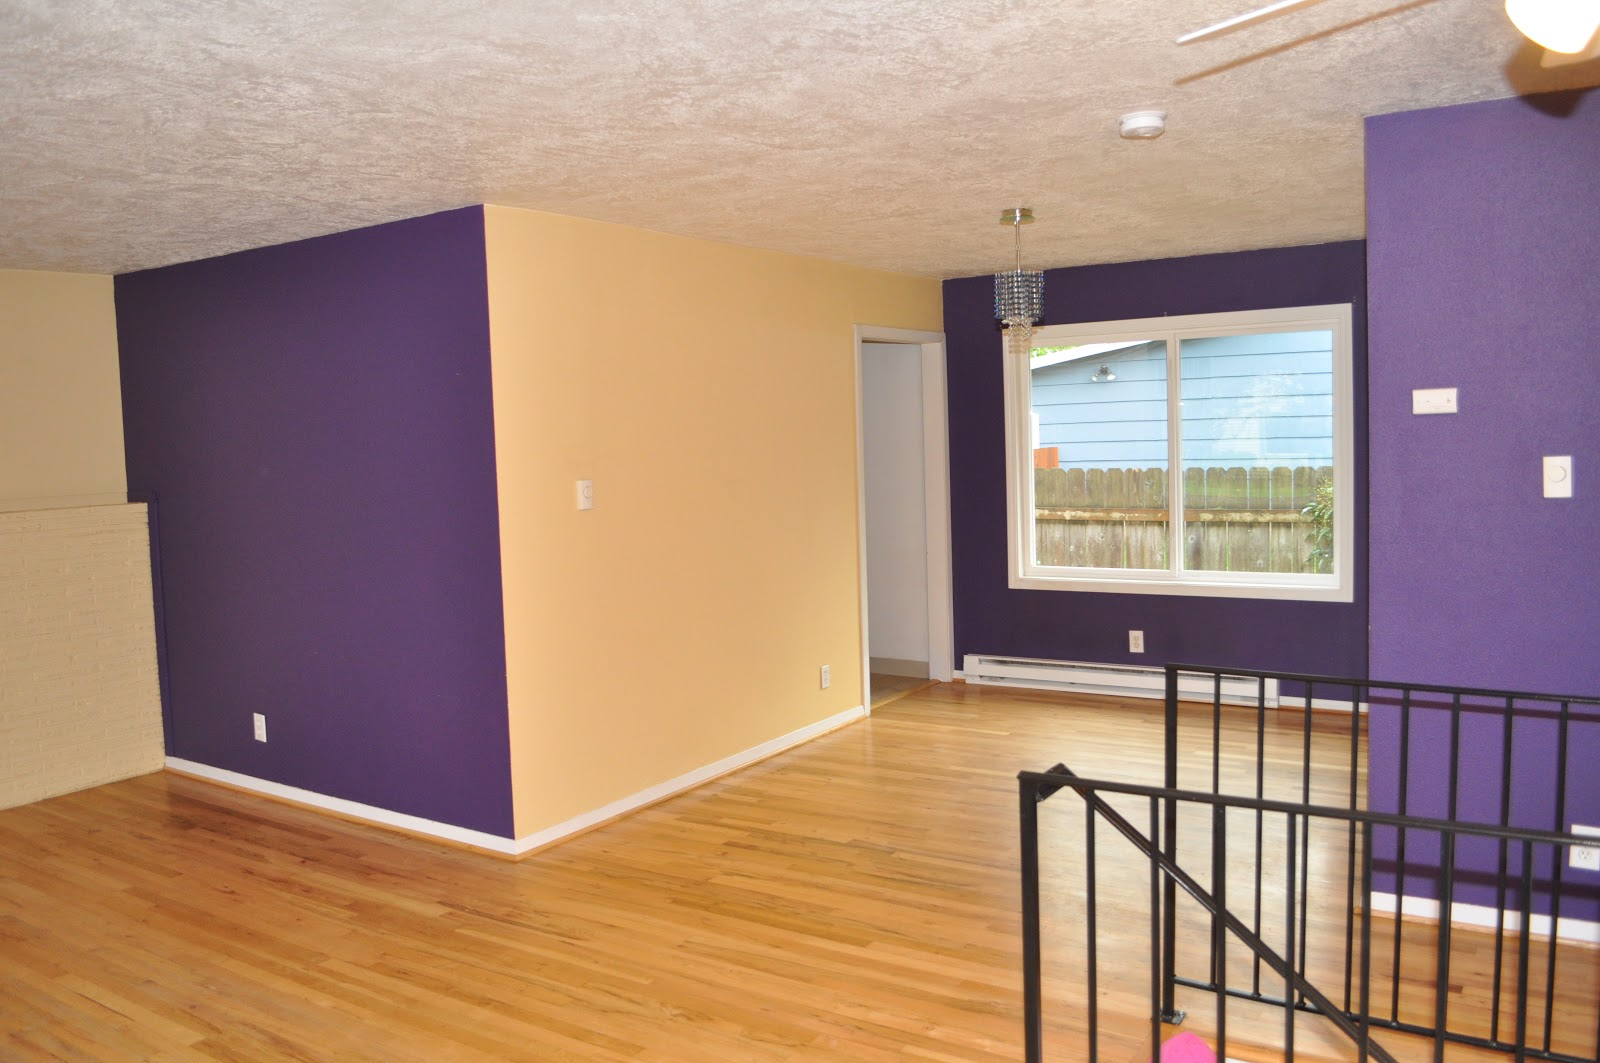 Remarkable Design Of The Living Room Areas With Brown Wooden Floor Added With Purple And Beige Wall Paint Ideas